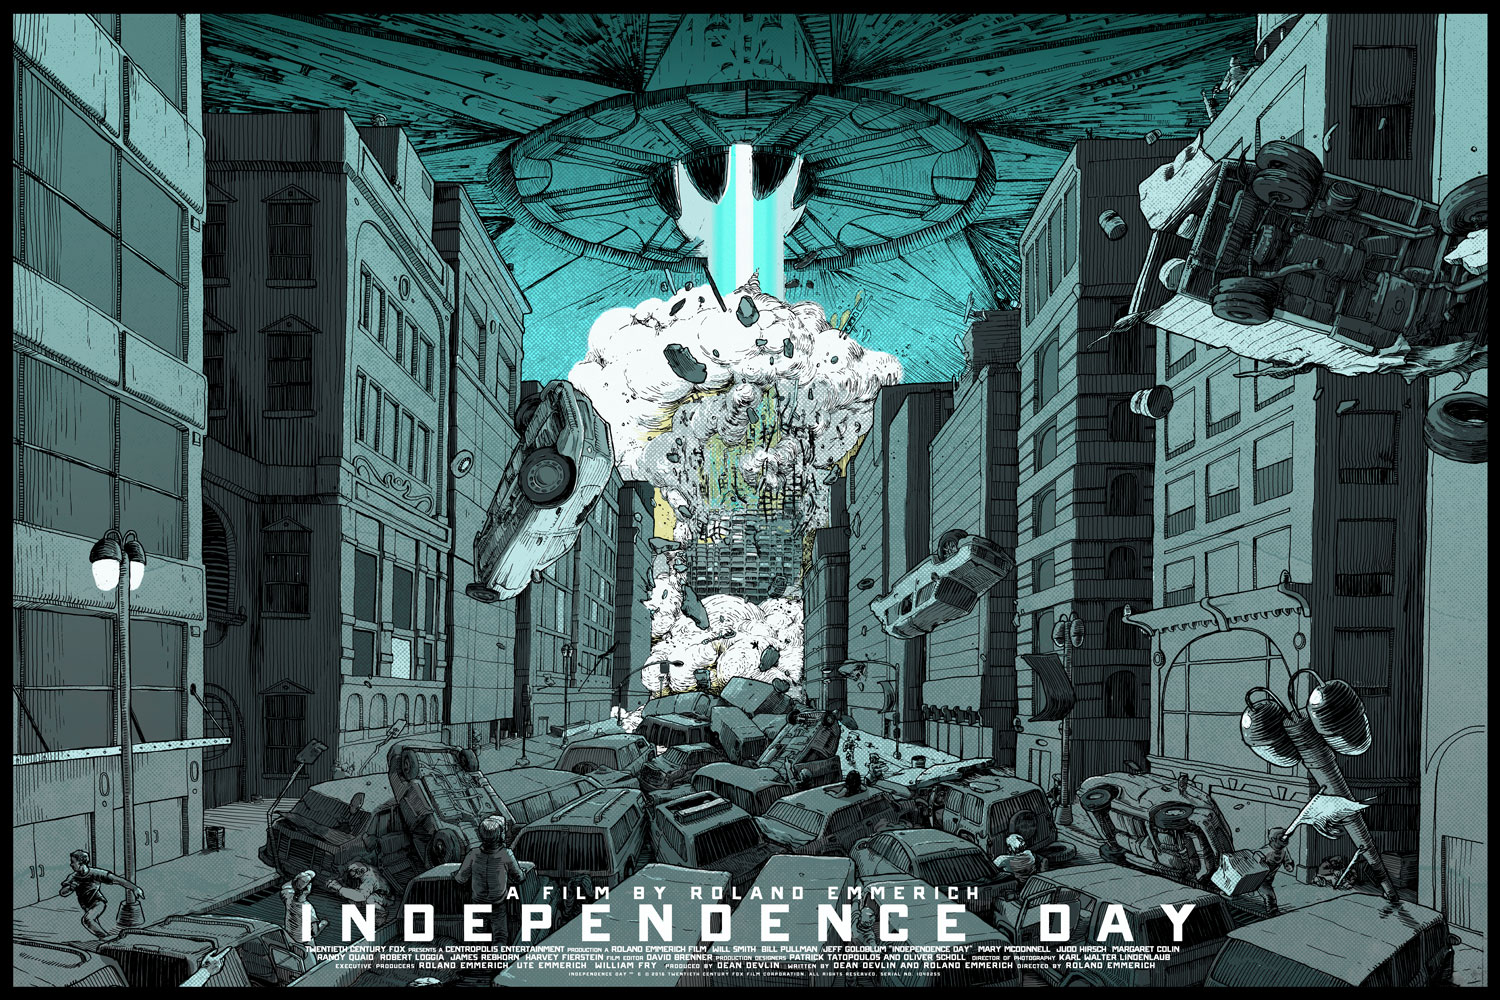 """Independence Day - 20th Anniversary"" by David Kloc.  36"" x 24"" Screenprint w/ GID.  Ed of 200 N.  $50"